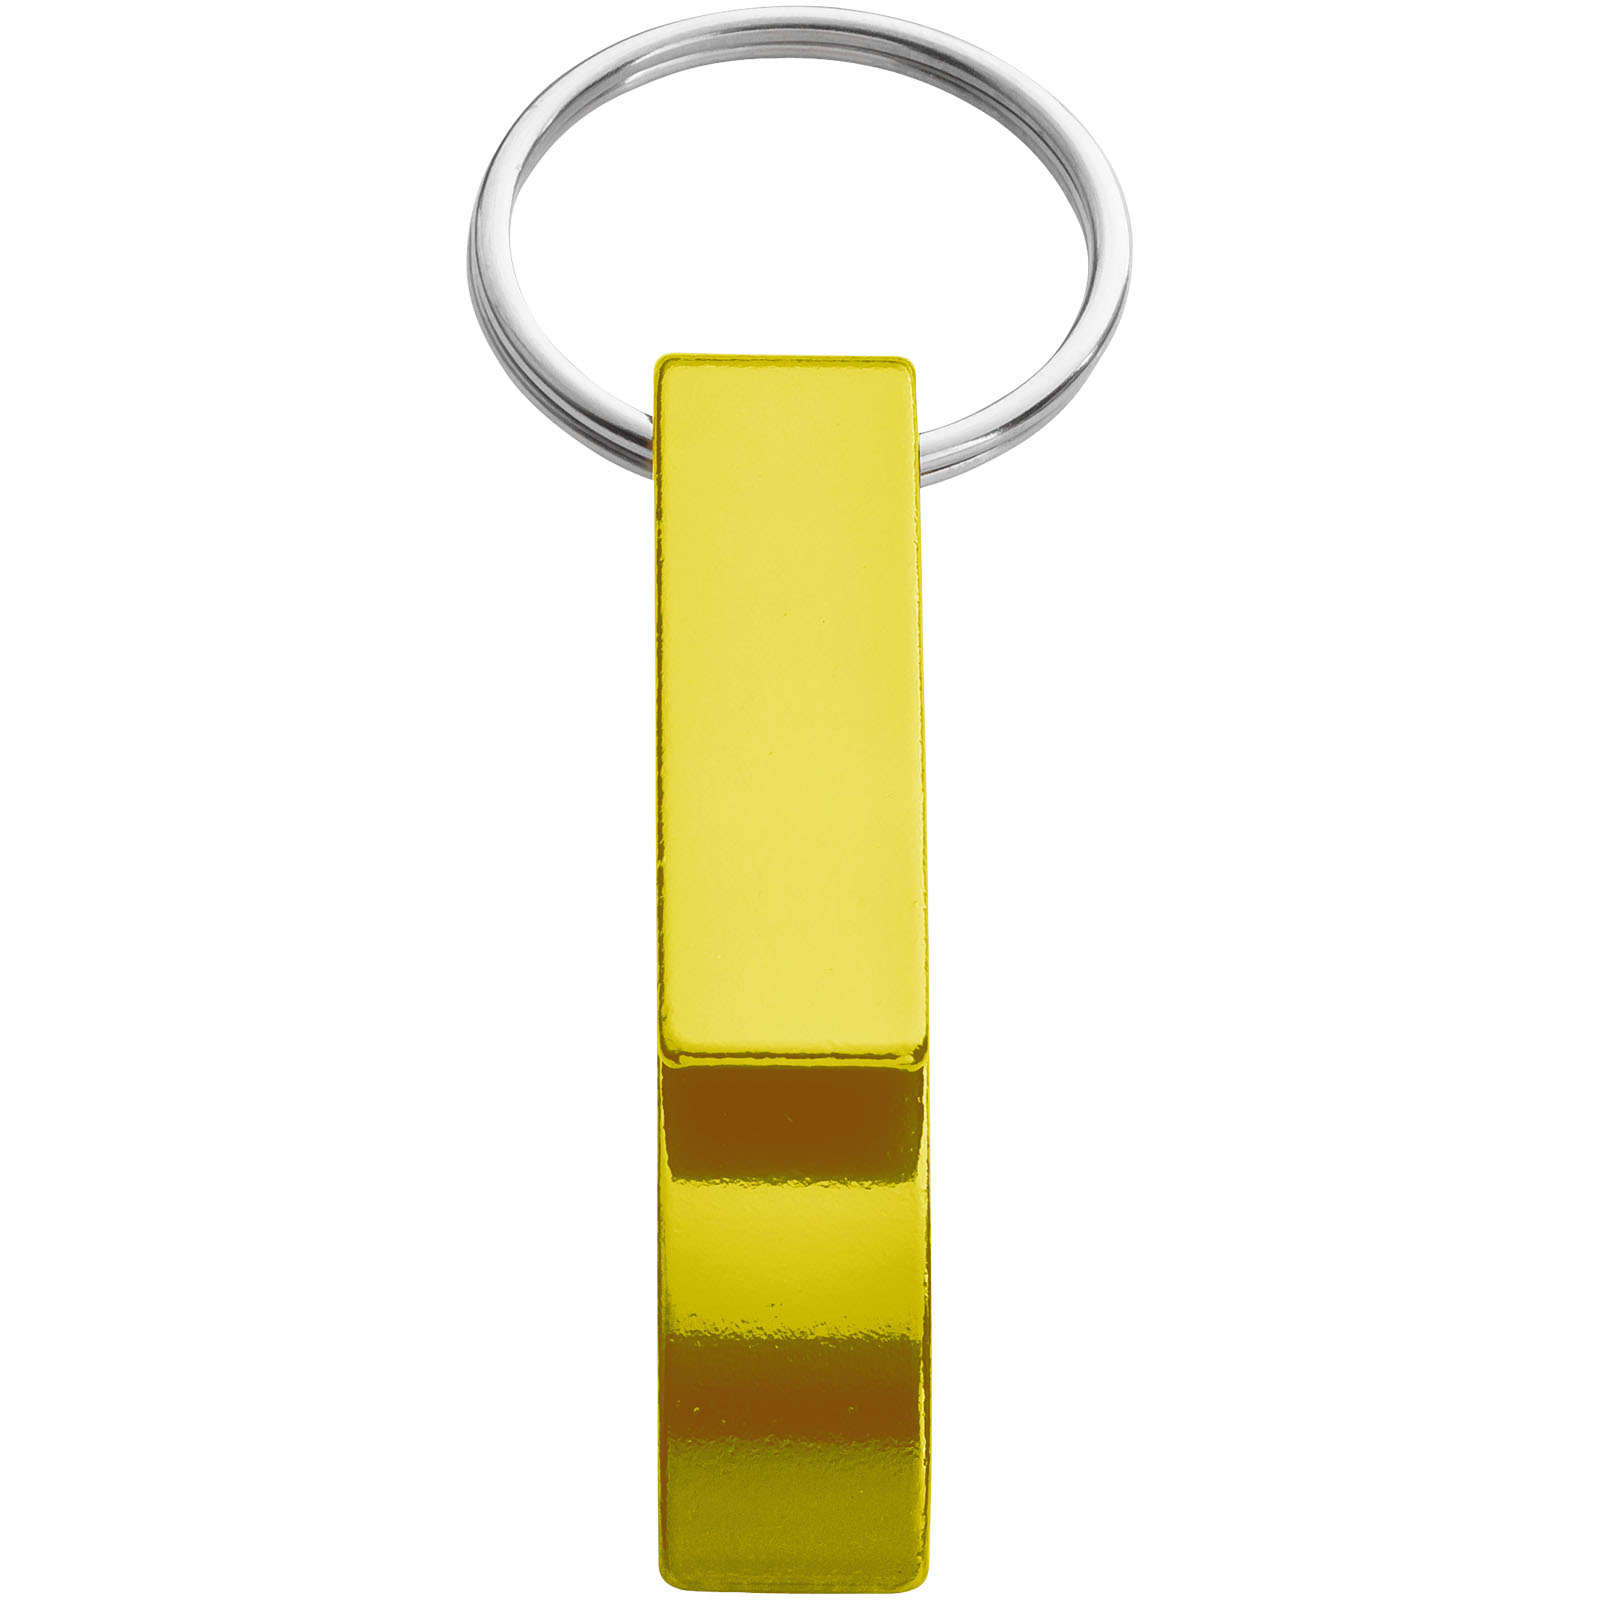 Tao bottle and can opener keychain